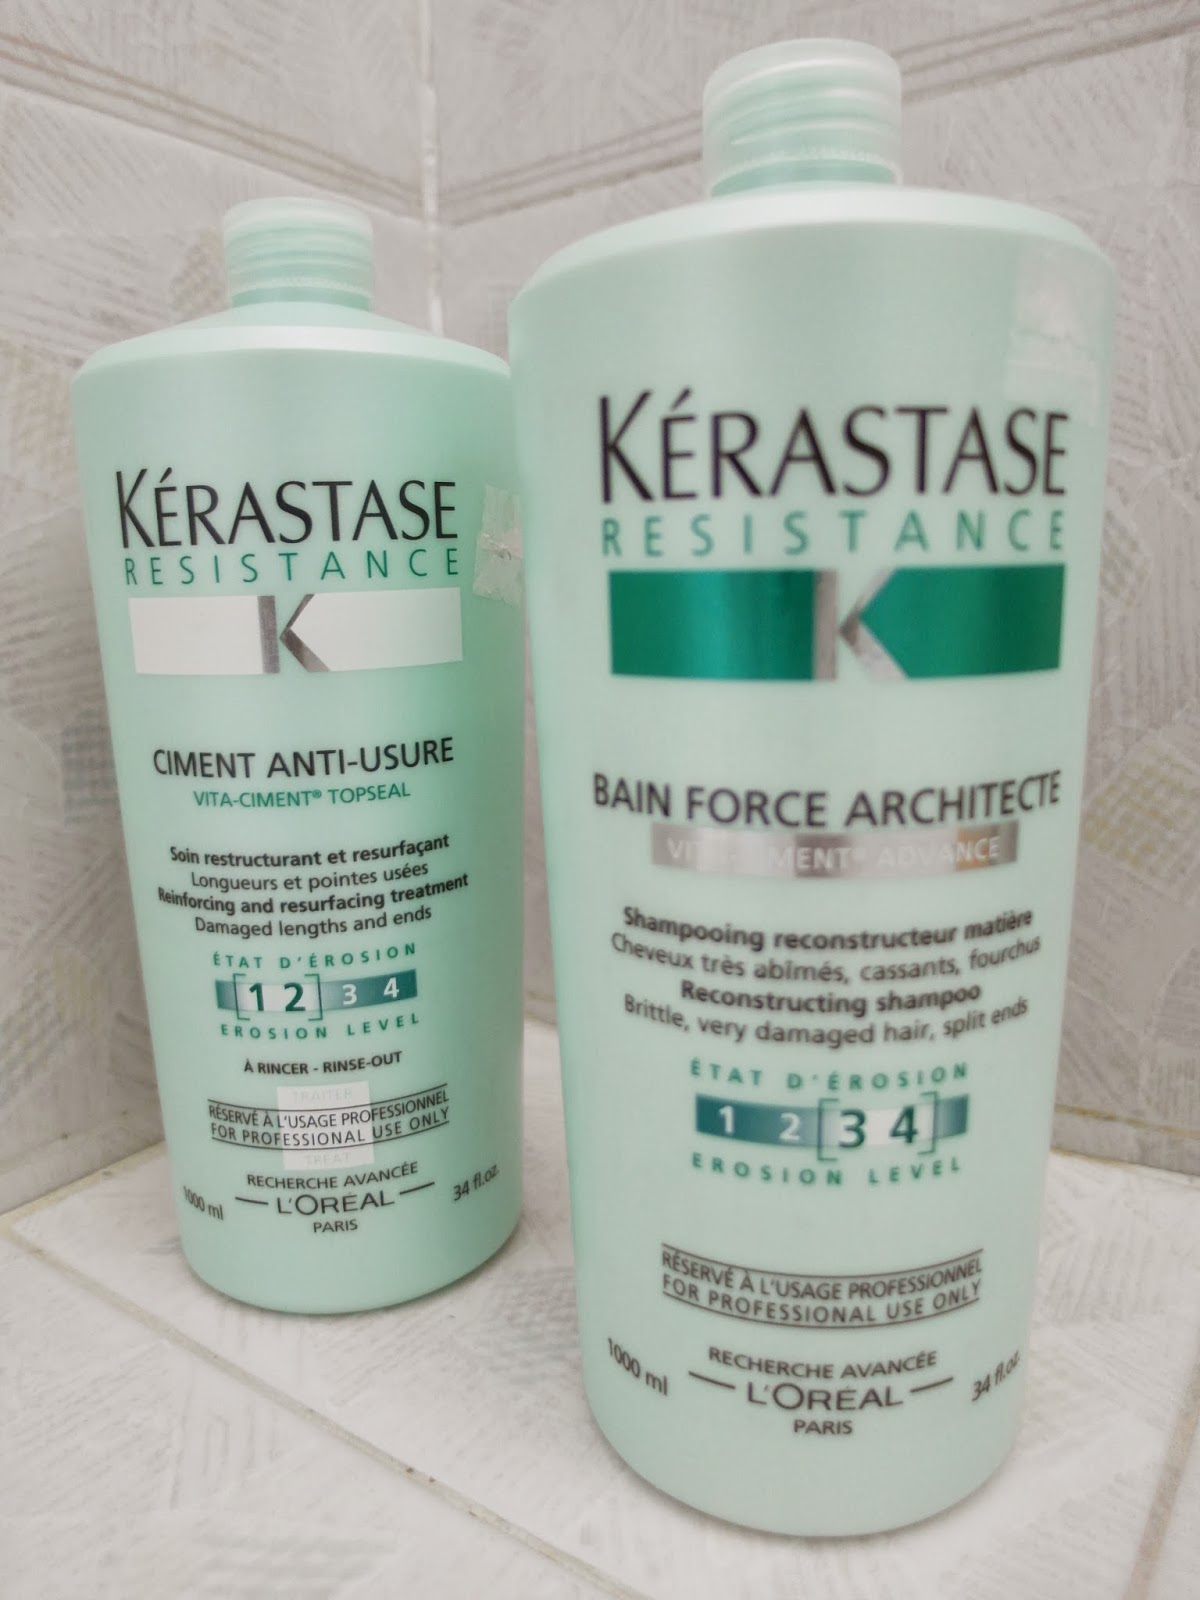 Milliewong k rastase shampoo and conditioner review for Kerastase bain miroir reviews